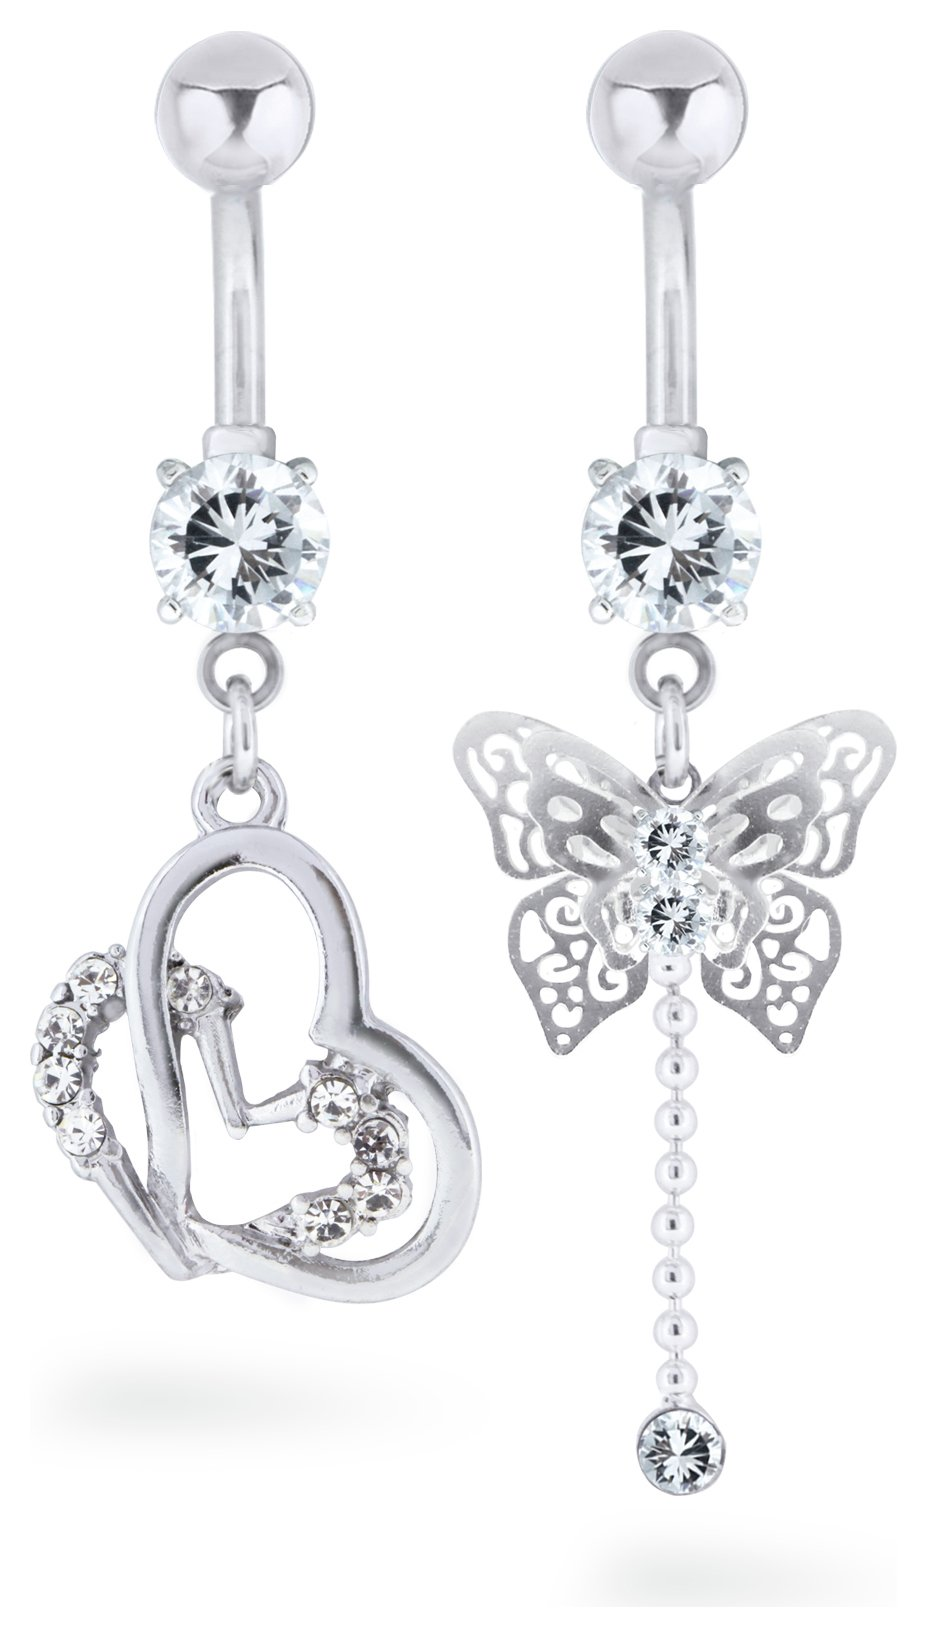 State of Mine Stainless Steel Butterfly Belly Bar - Set of 2